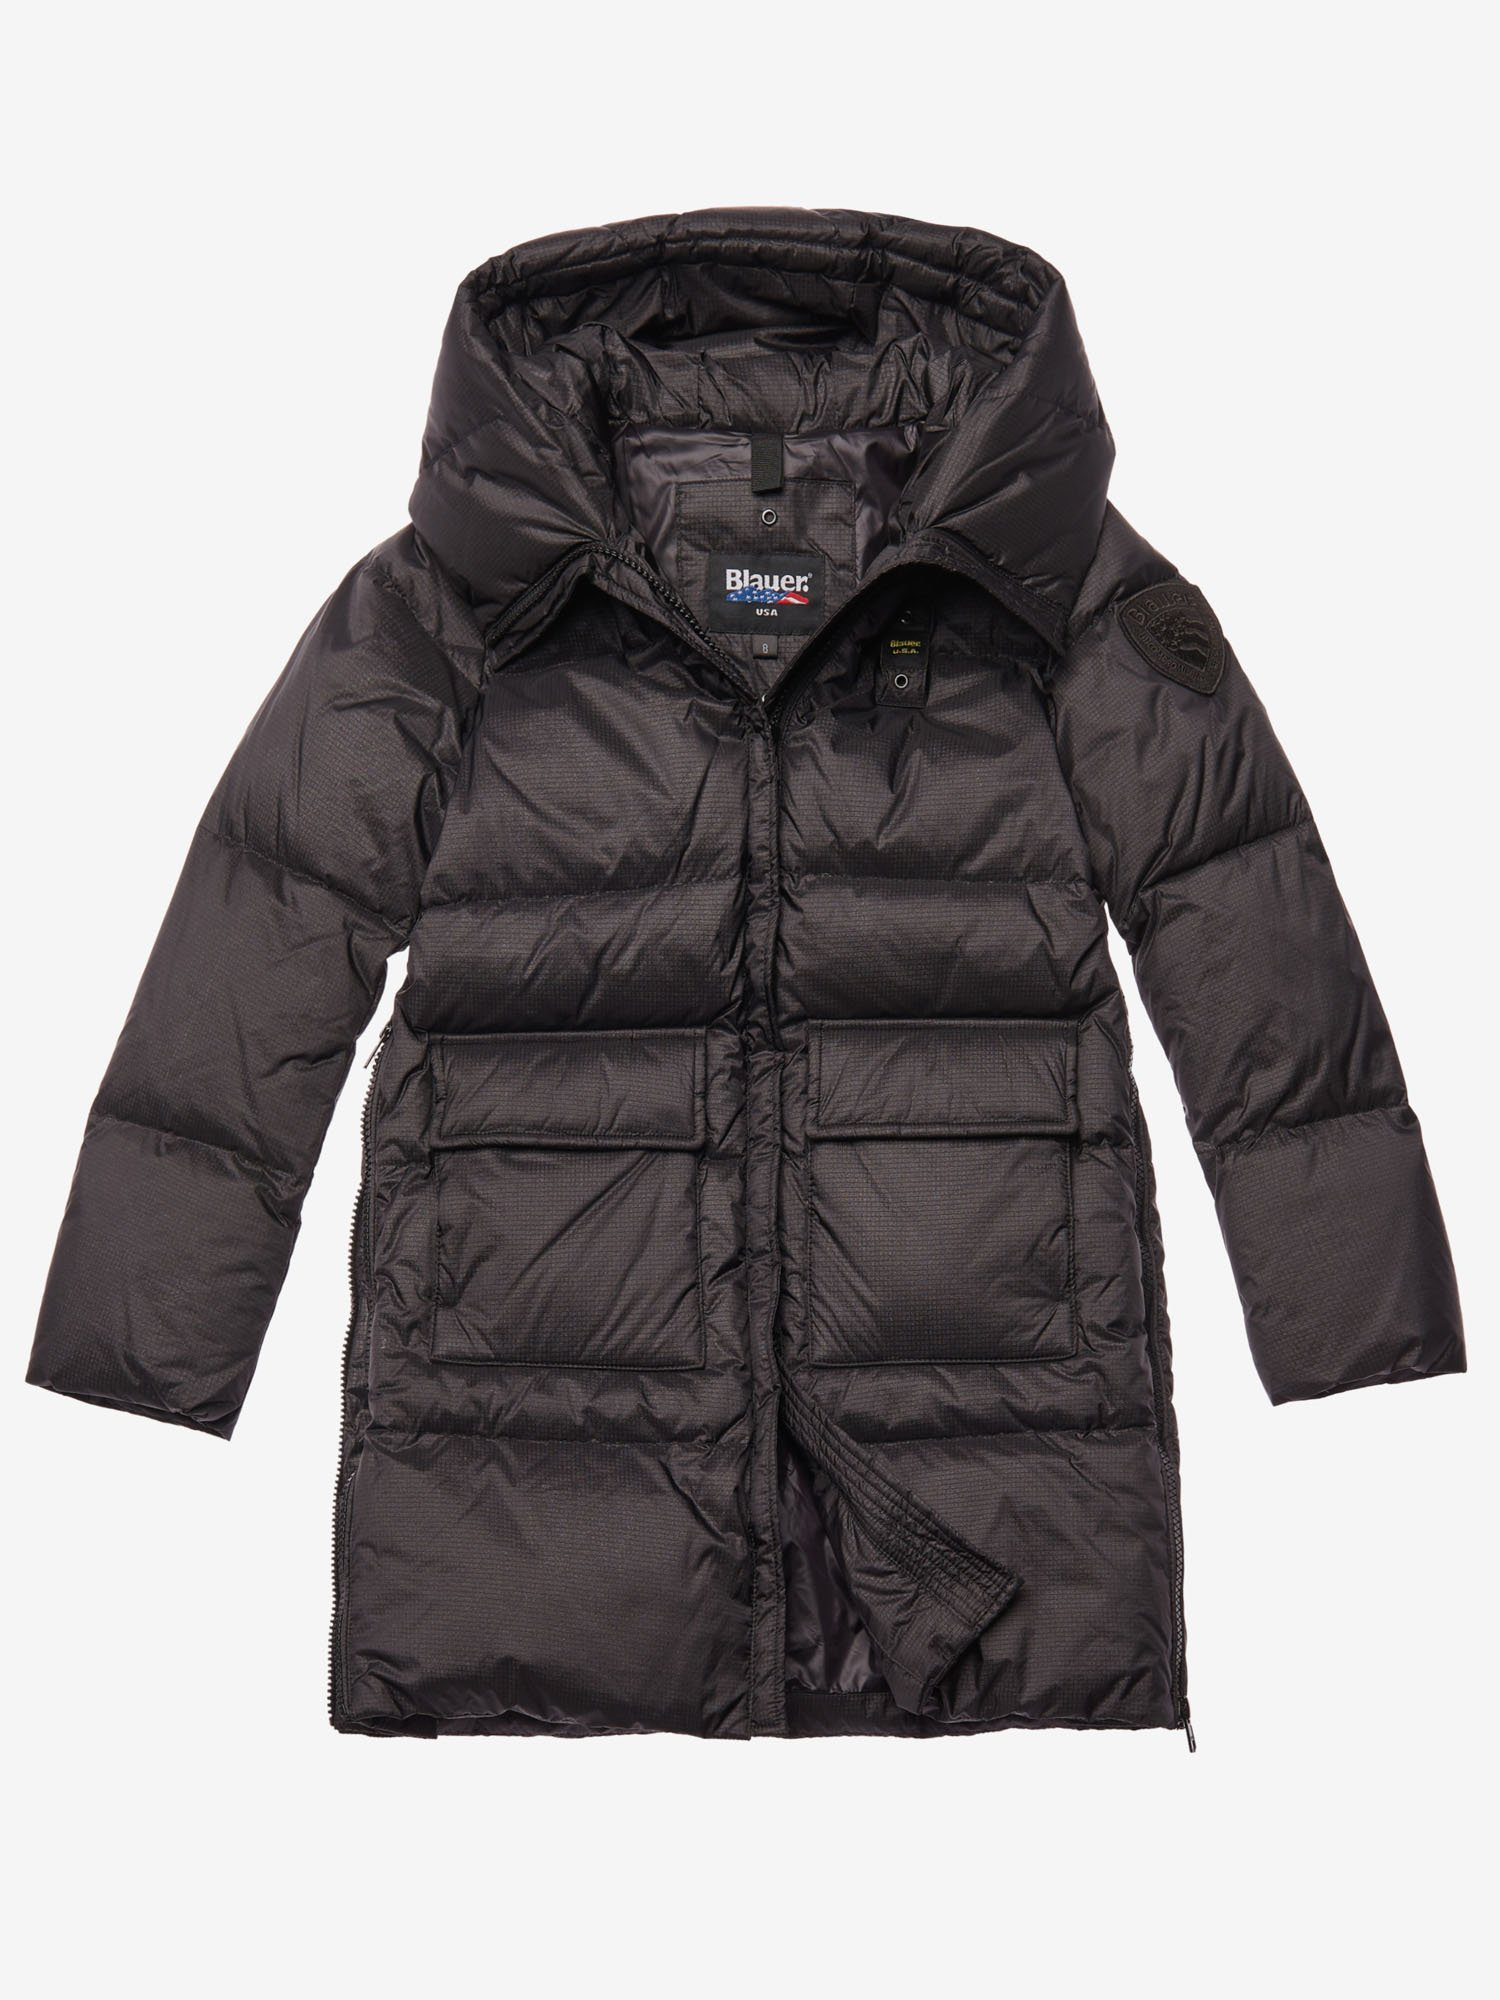 WOODS  LONG IRIDESCENT DOWN JACKET - Blauer